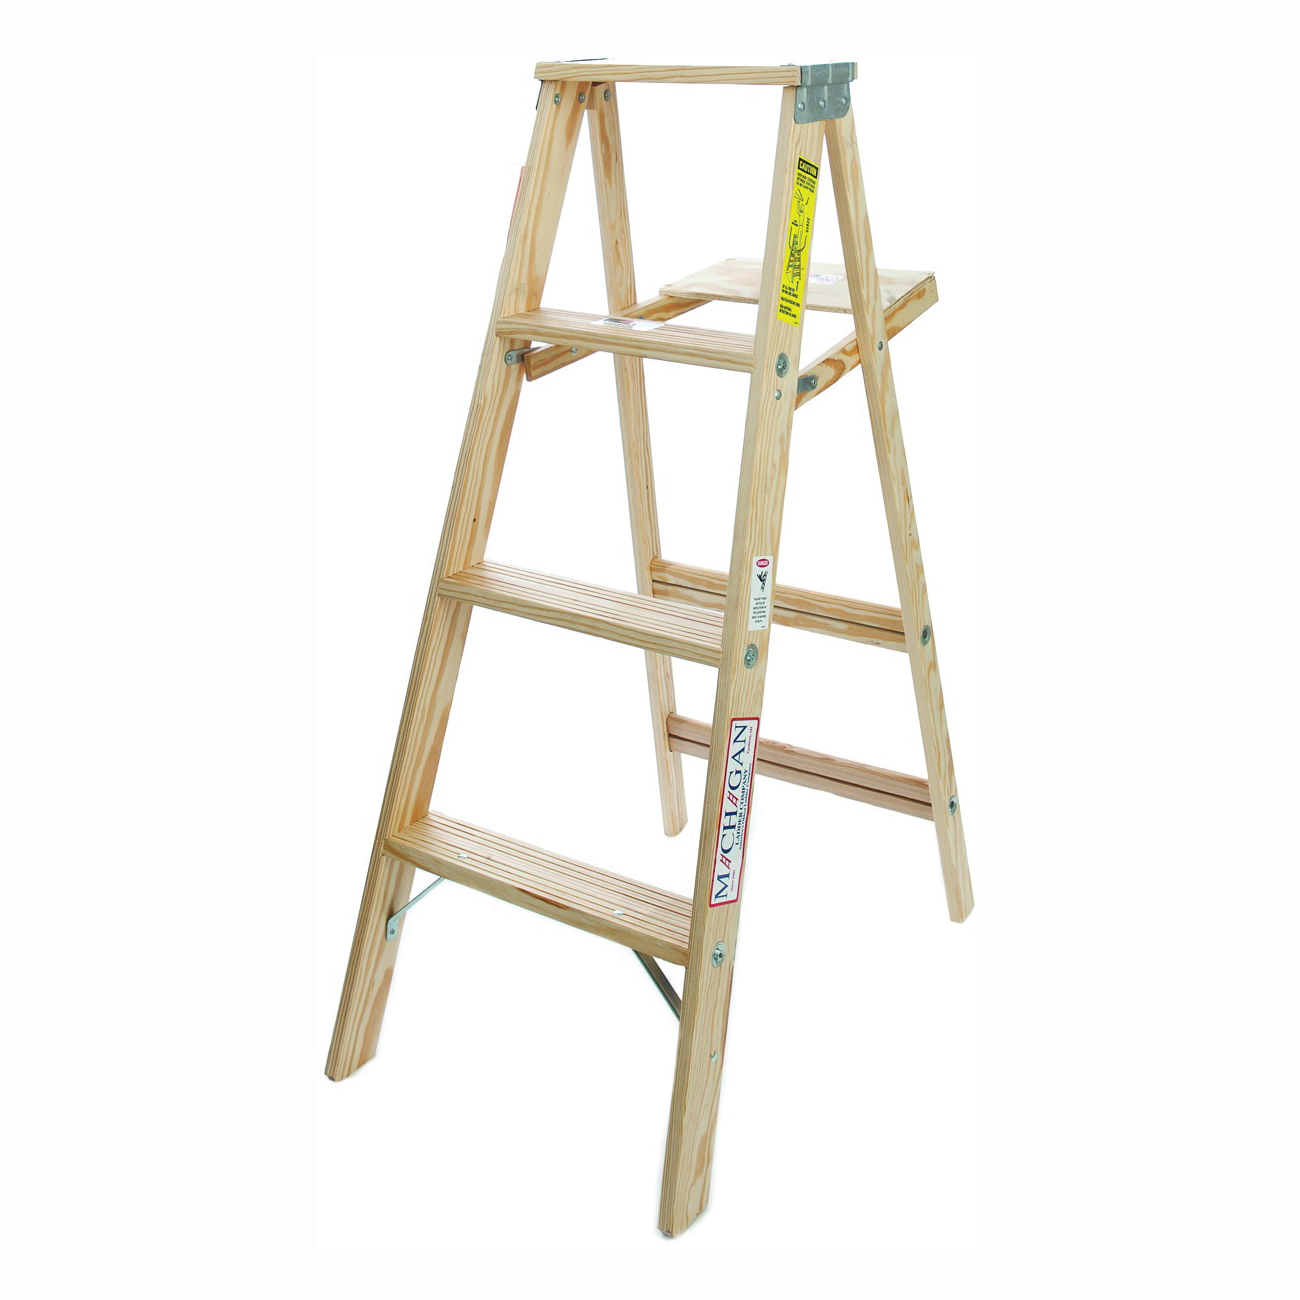 Picture of MICHIGAN LADDER 1100-04 Step Ladder, 1.9 ft Max Reach H, 200 lb, Type III Duty Rating, Wood, Pine